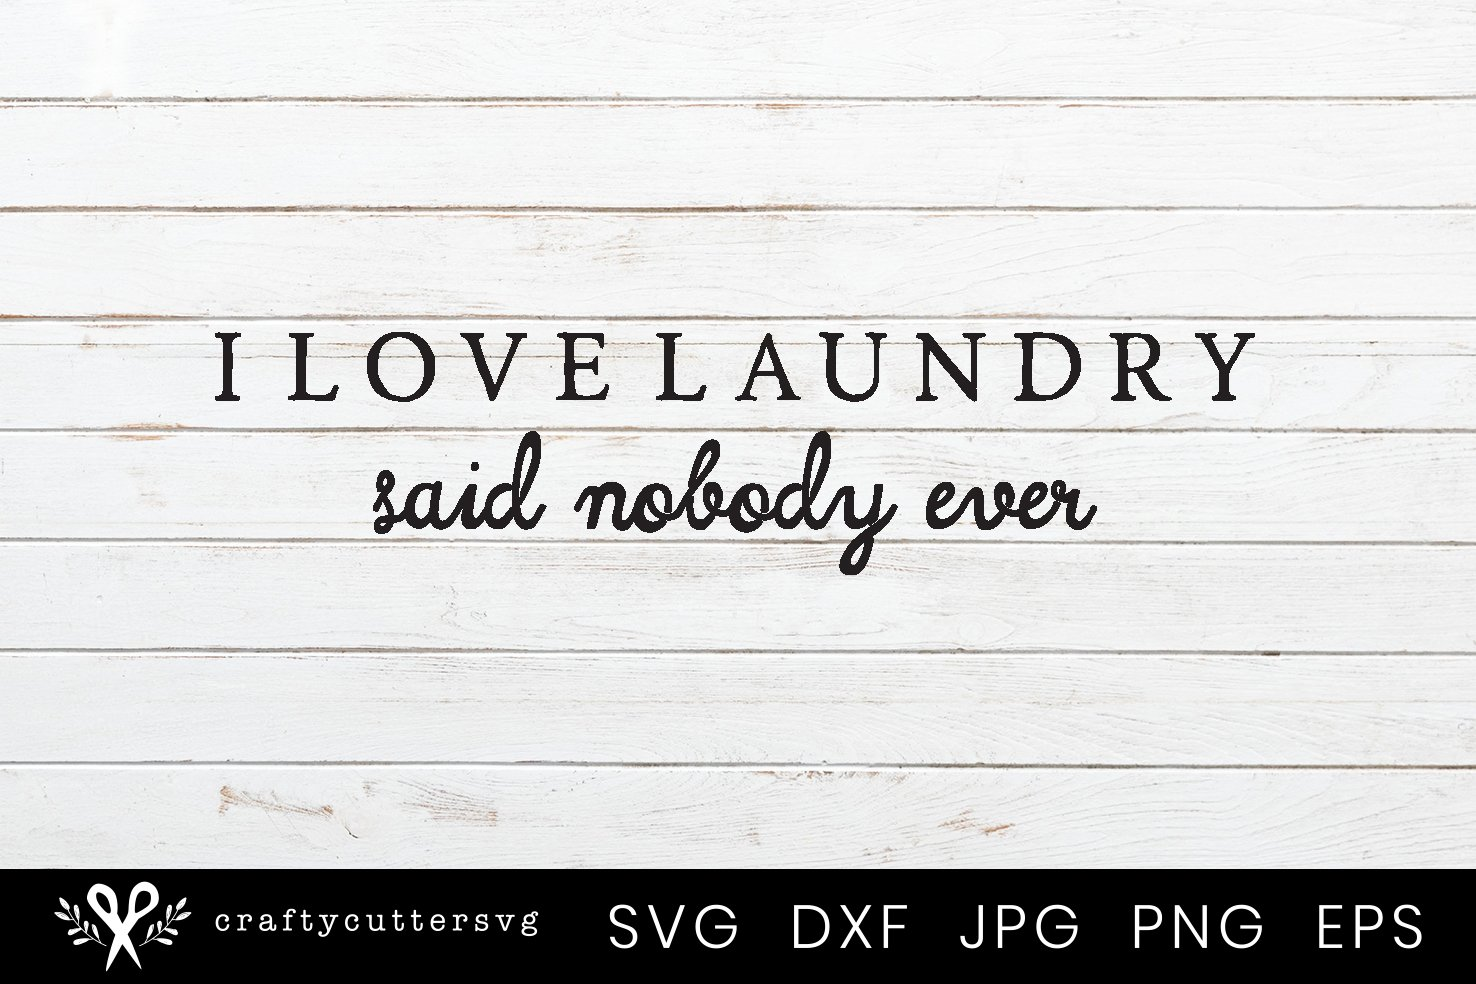 I love Laundry | Farmhouse Laundry Room Sign SVG example image 2